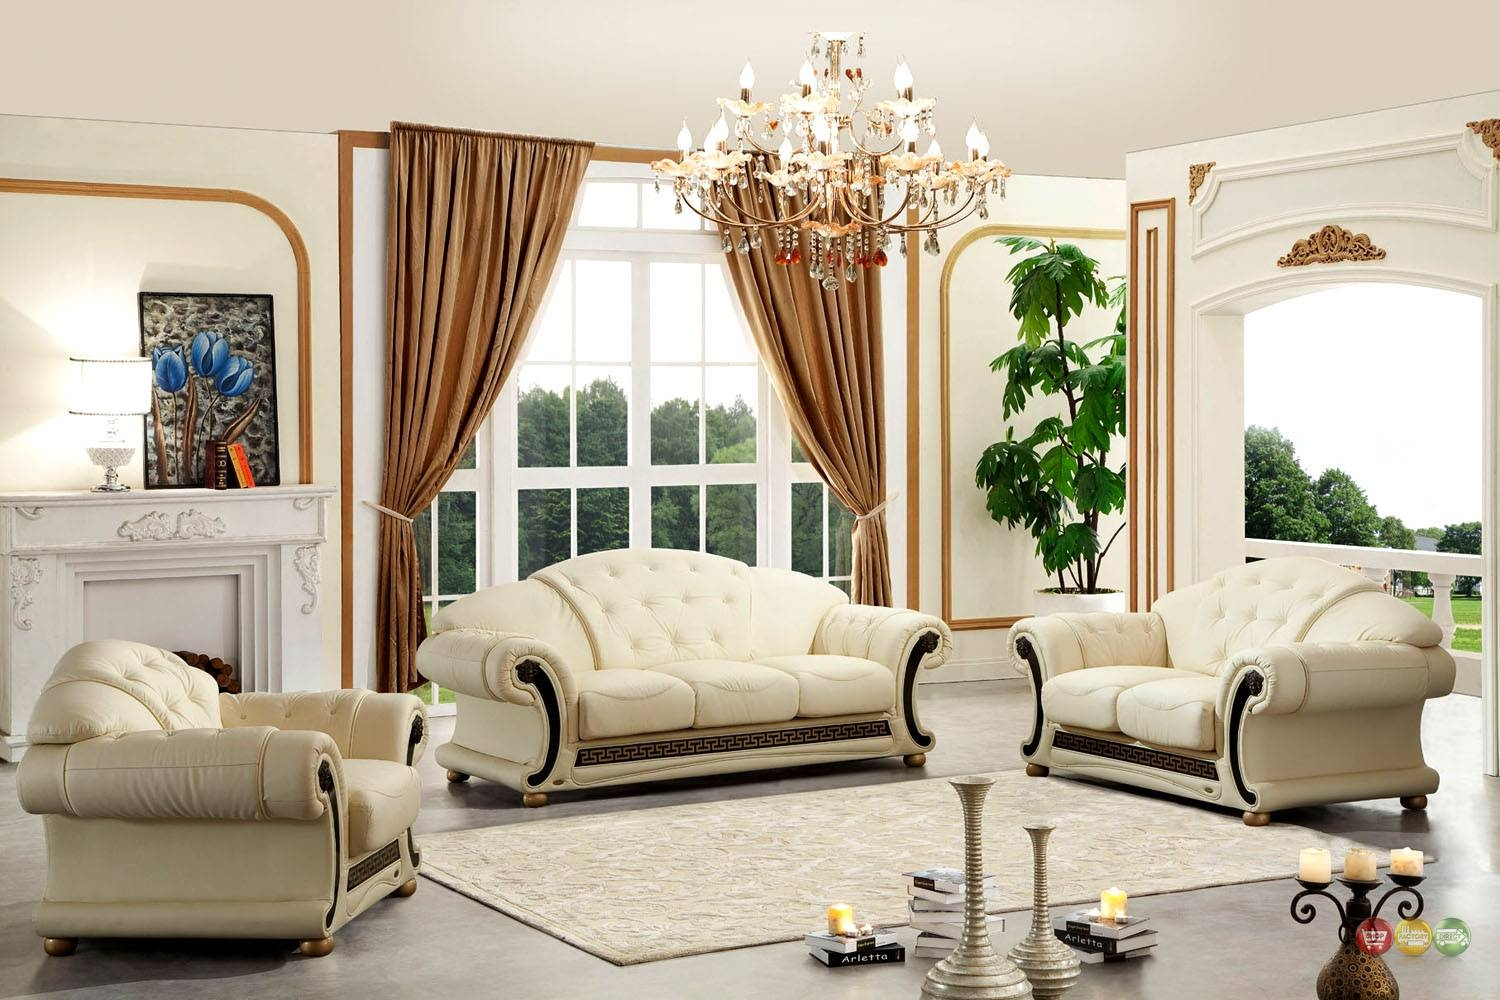 Sofas Center : Sofa Set In Taupe Leather Wood Accent Chkingstone in Traditional Sofas for Sale (Image 16 of 30)